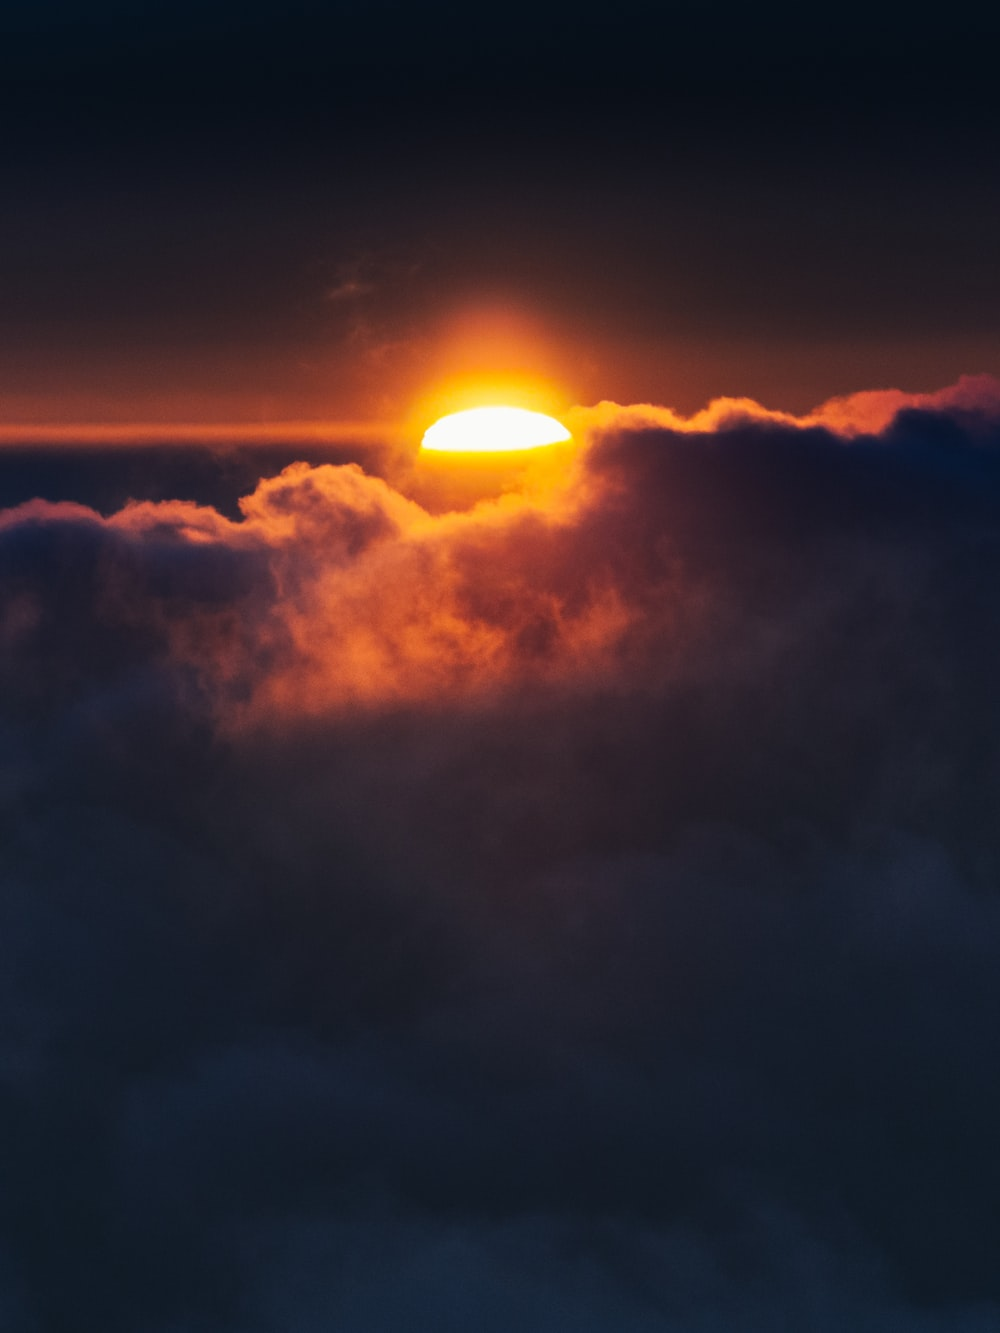 sun setting over the clouds